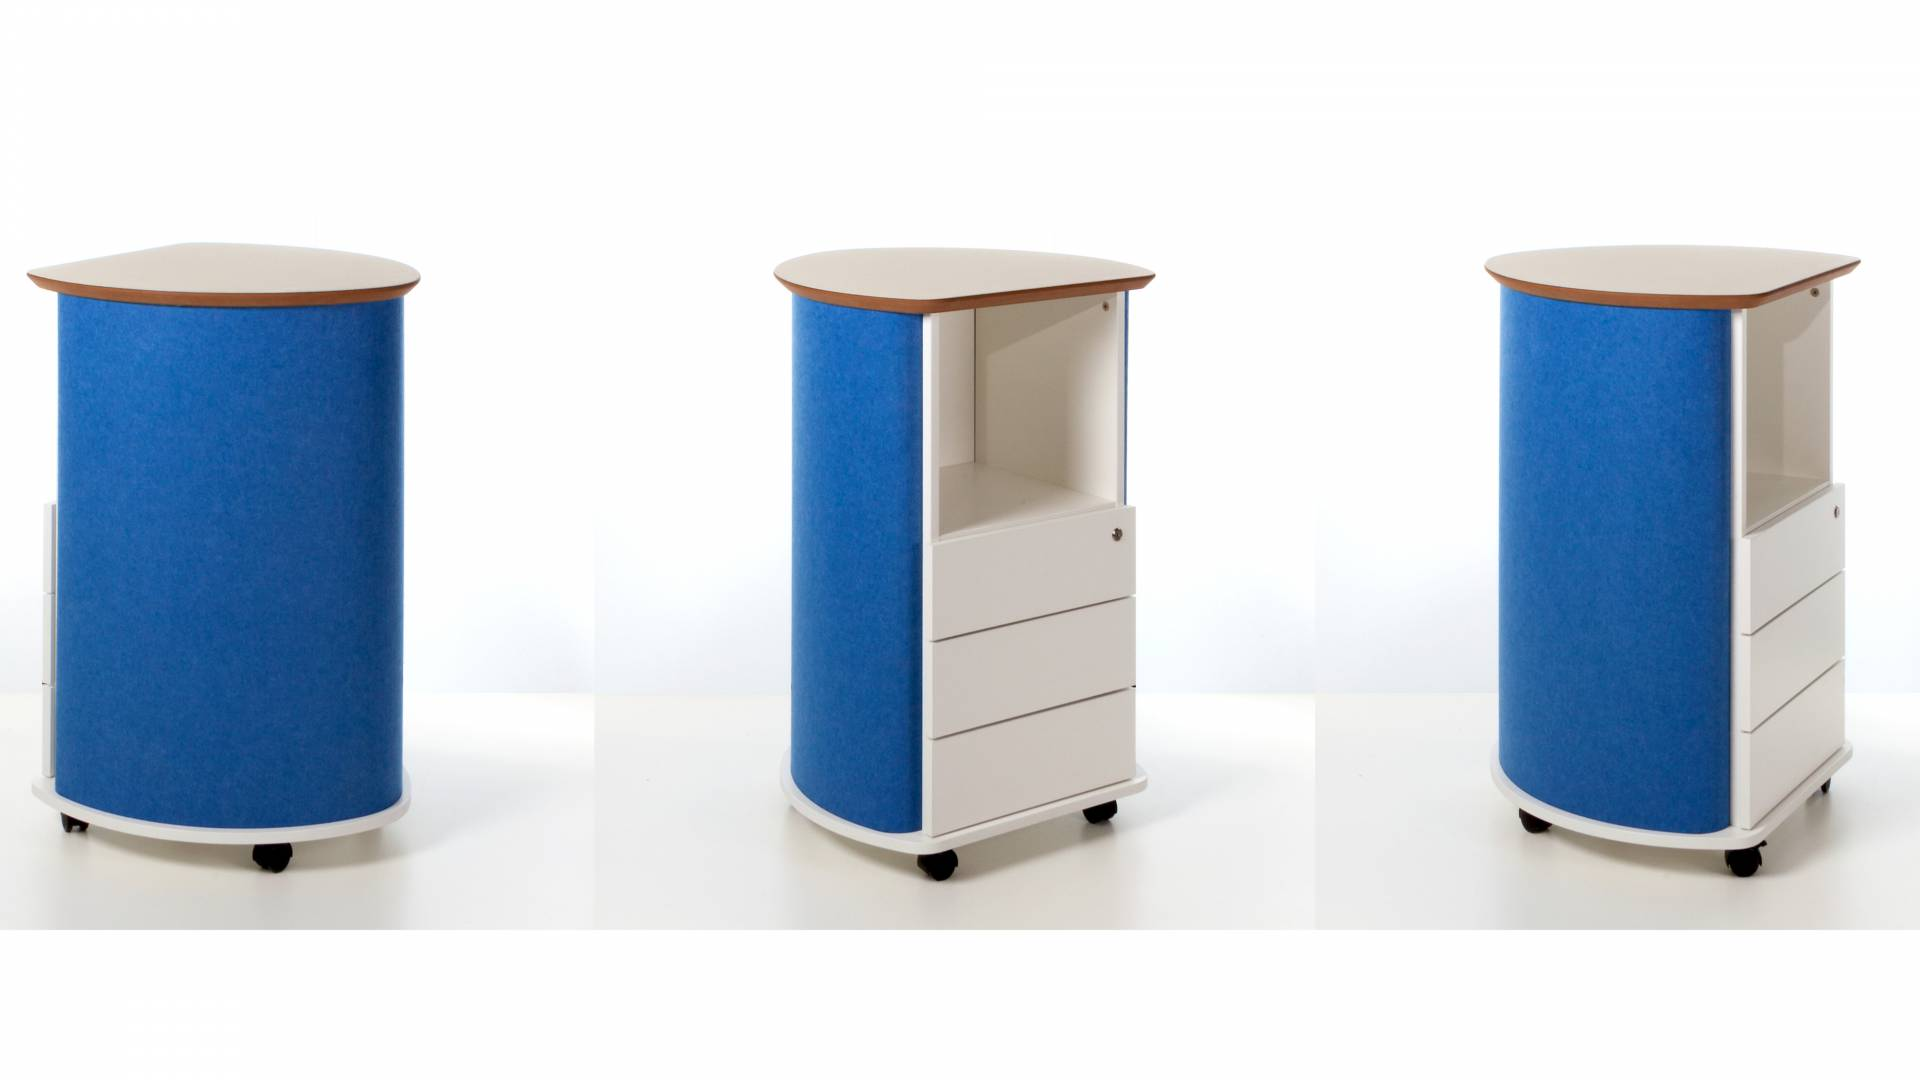 vitAcoustic | Caddy + Container